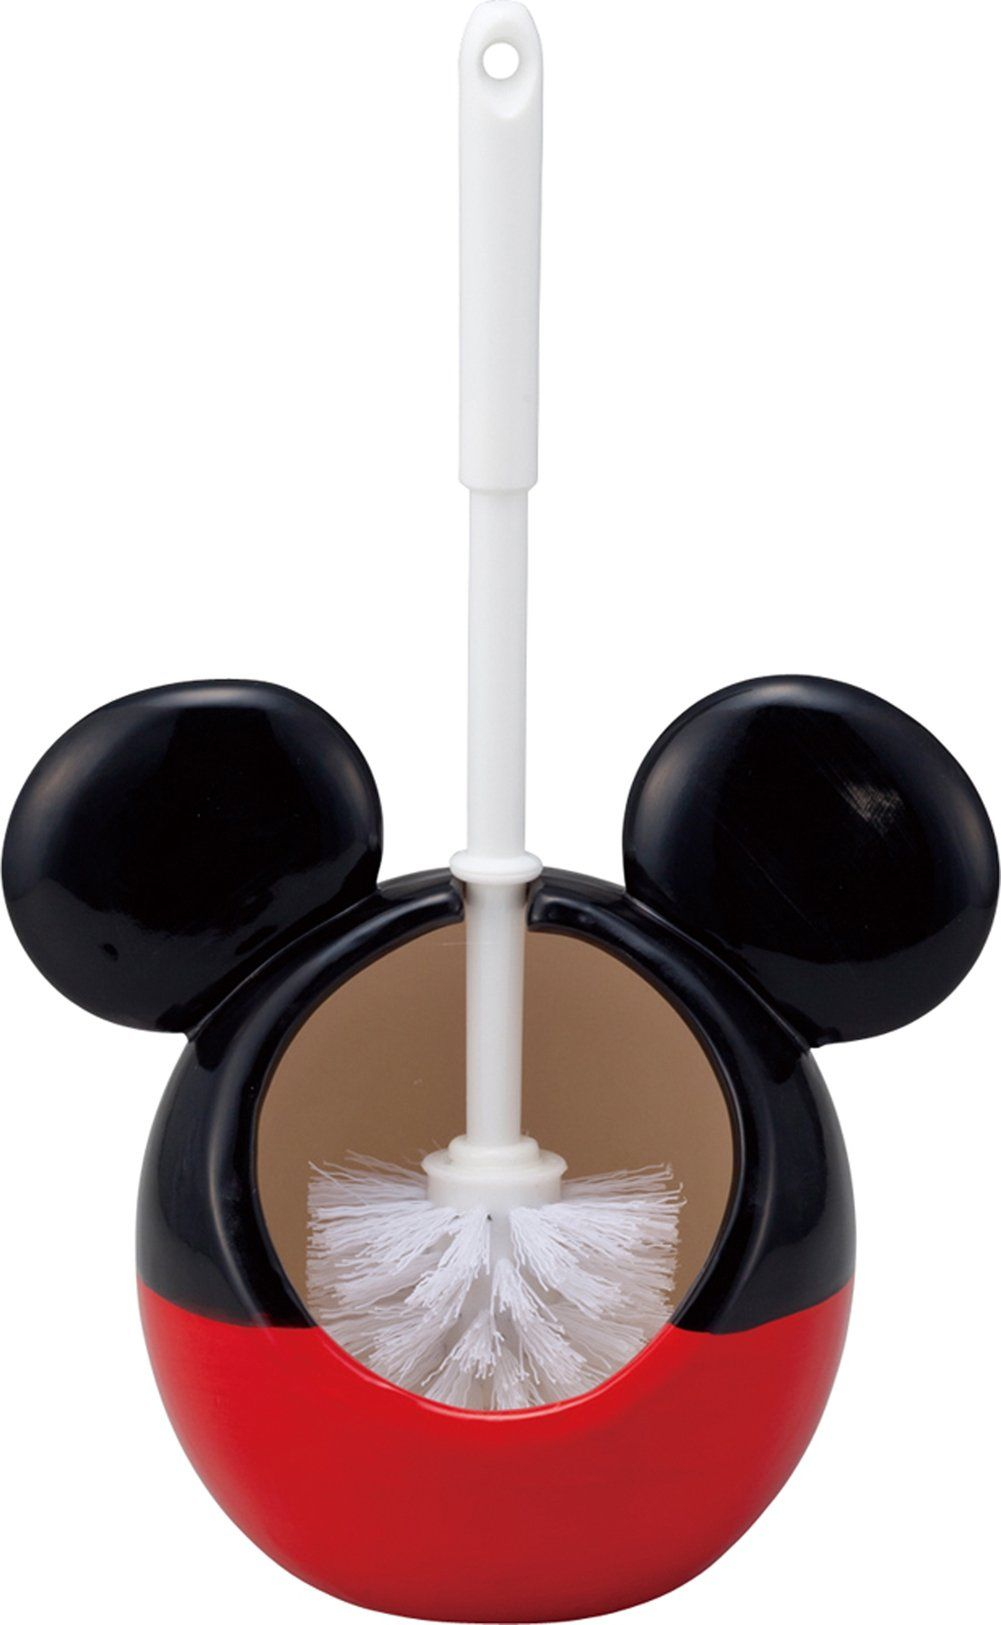 One Of The Coolest Disney Merchandise EVER Ive Always Wanted - Mickey mouse bathroom accessories